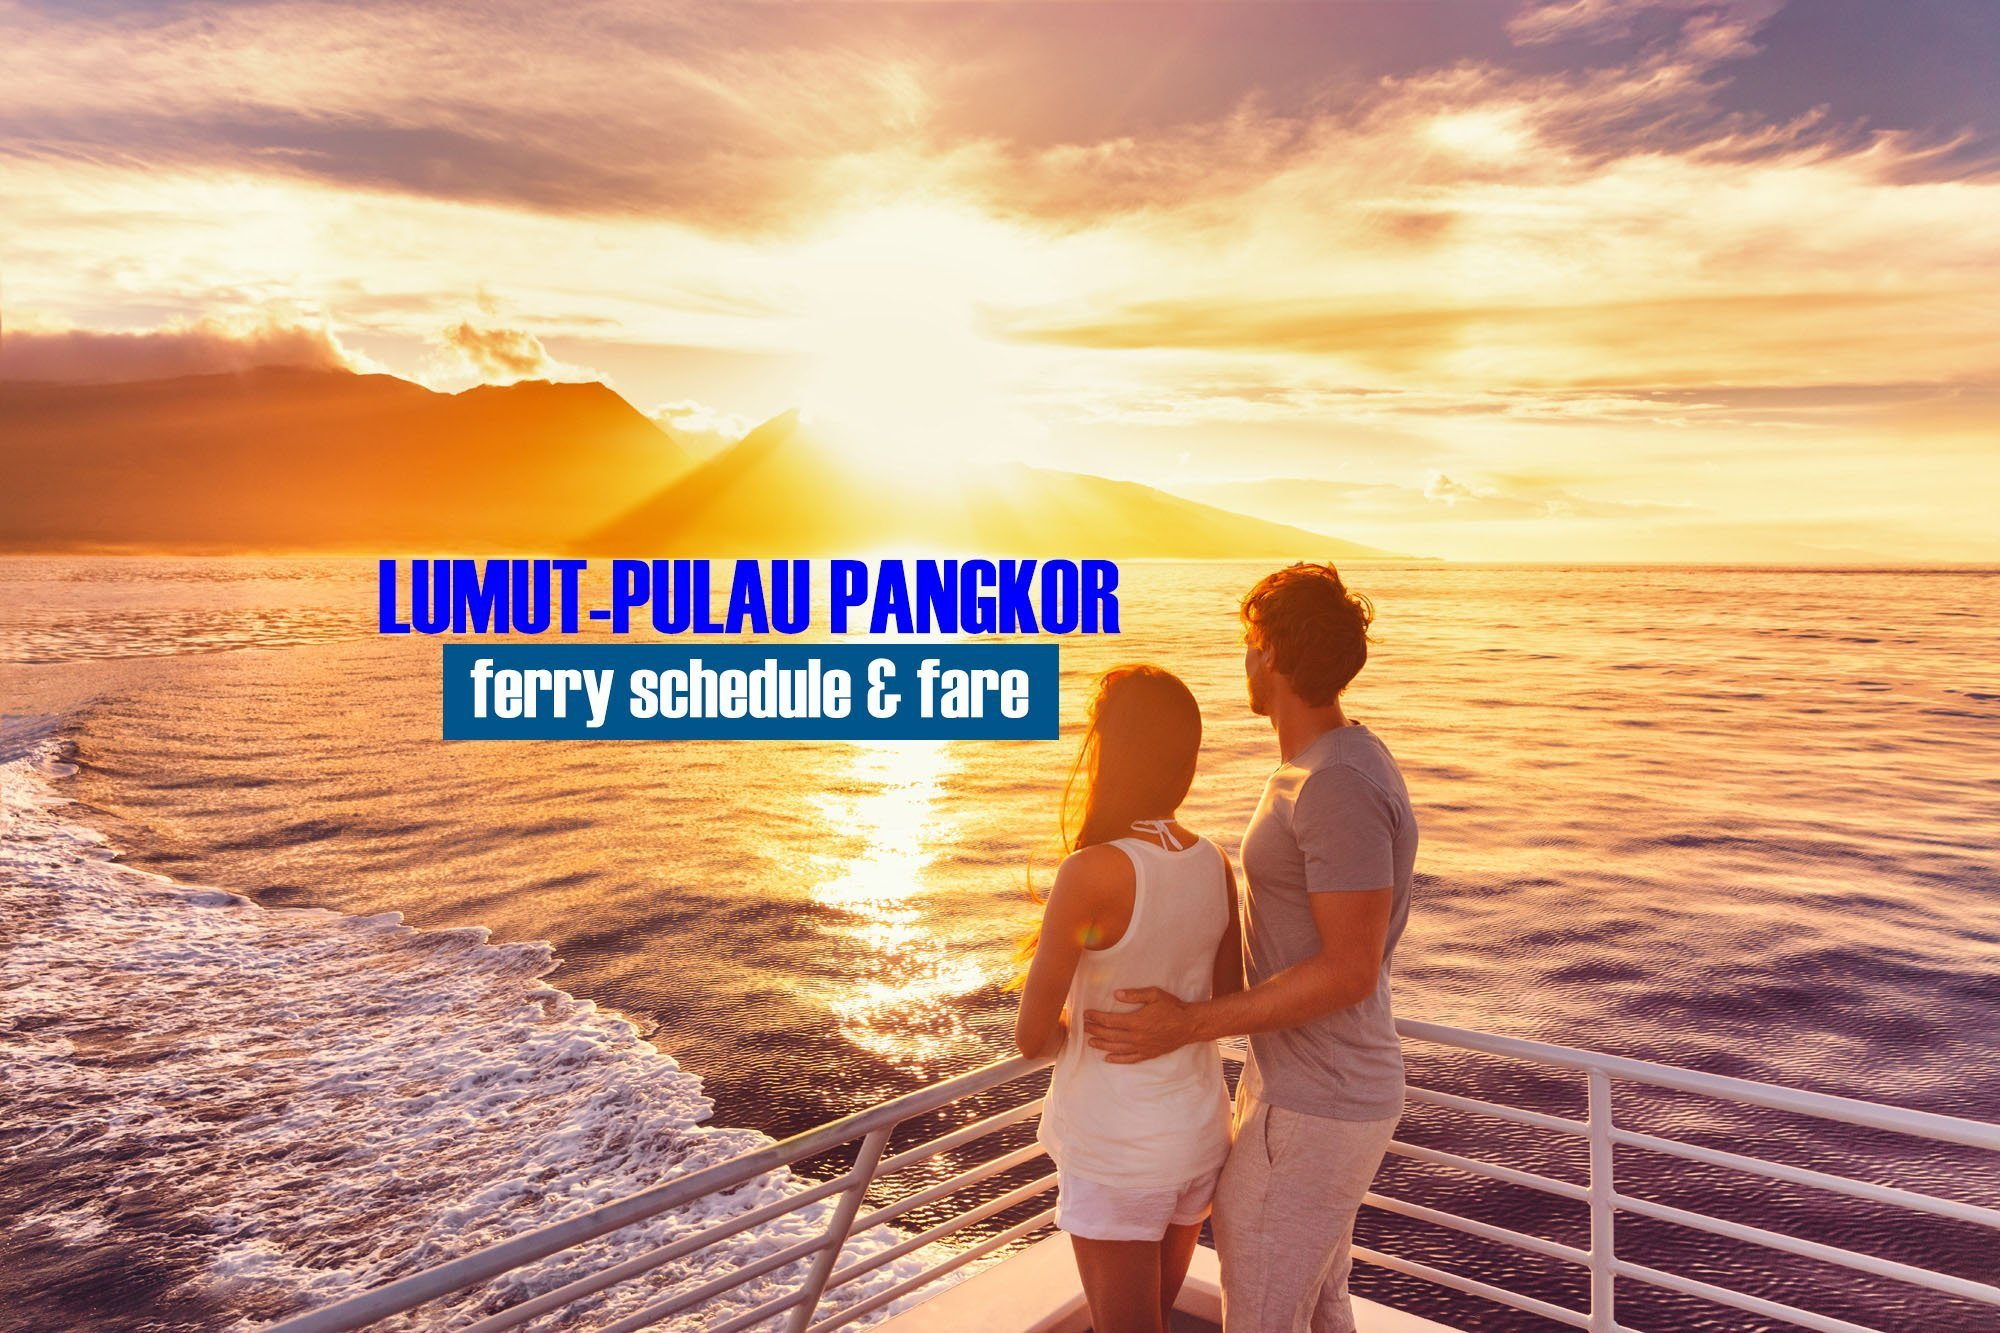 Lumut to Pulau Pangkor: 2020 Ferry Schedule and Fare